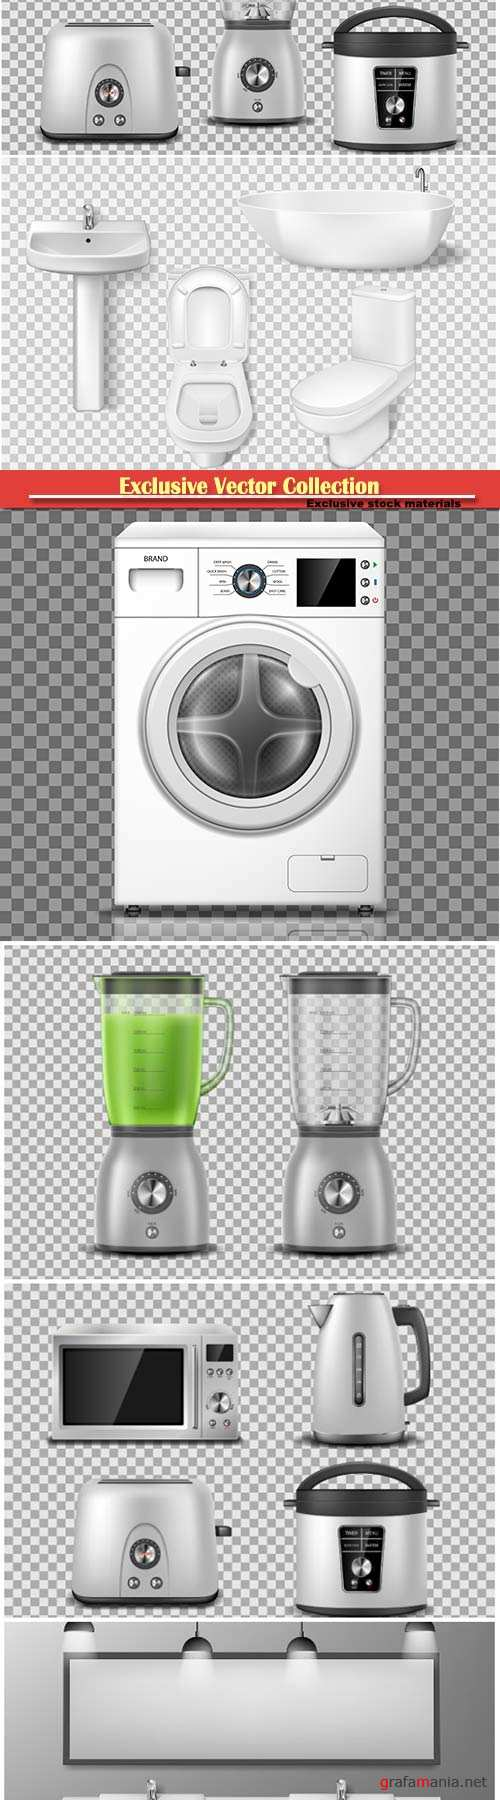 Set of household appliance, kitchen, bathroom appliances,  vector illustration